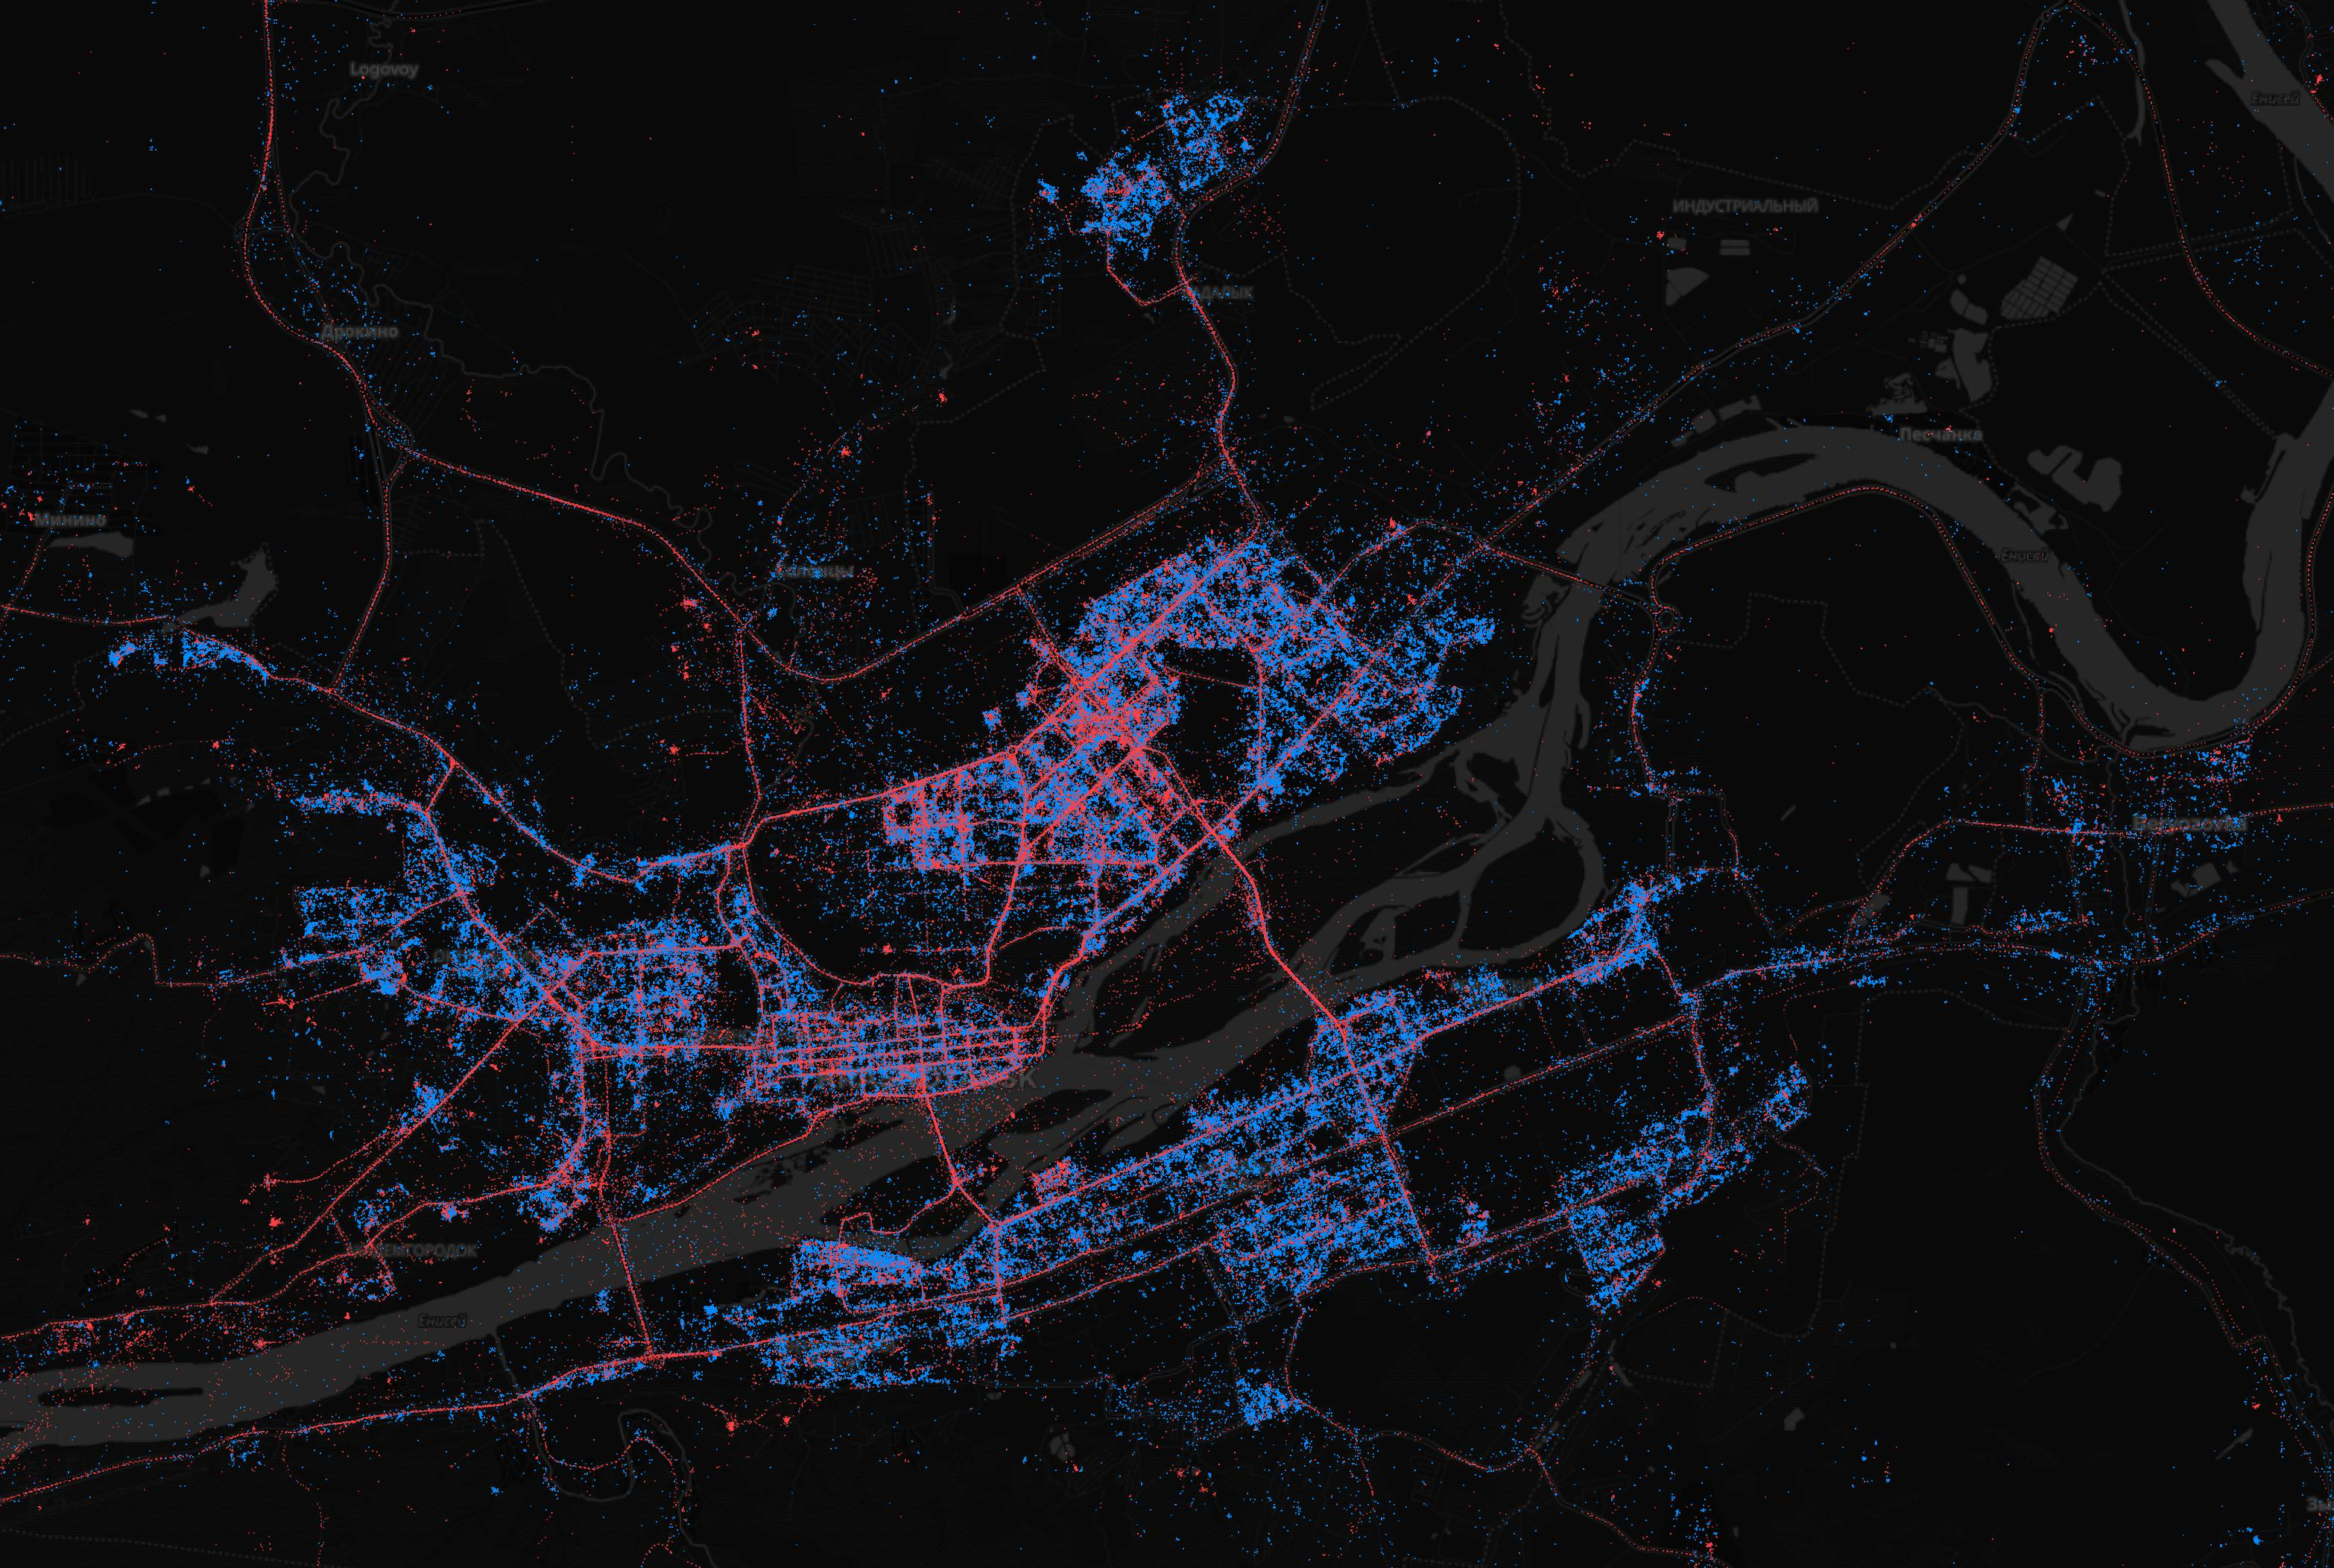 In Moscow - iPhones, in St. Petersburg - Android. What are the maps of Android and iOS users in Russia | Kanobu - Image 6